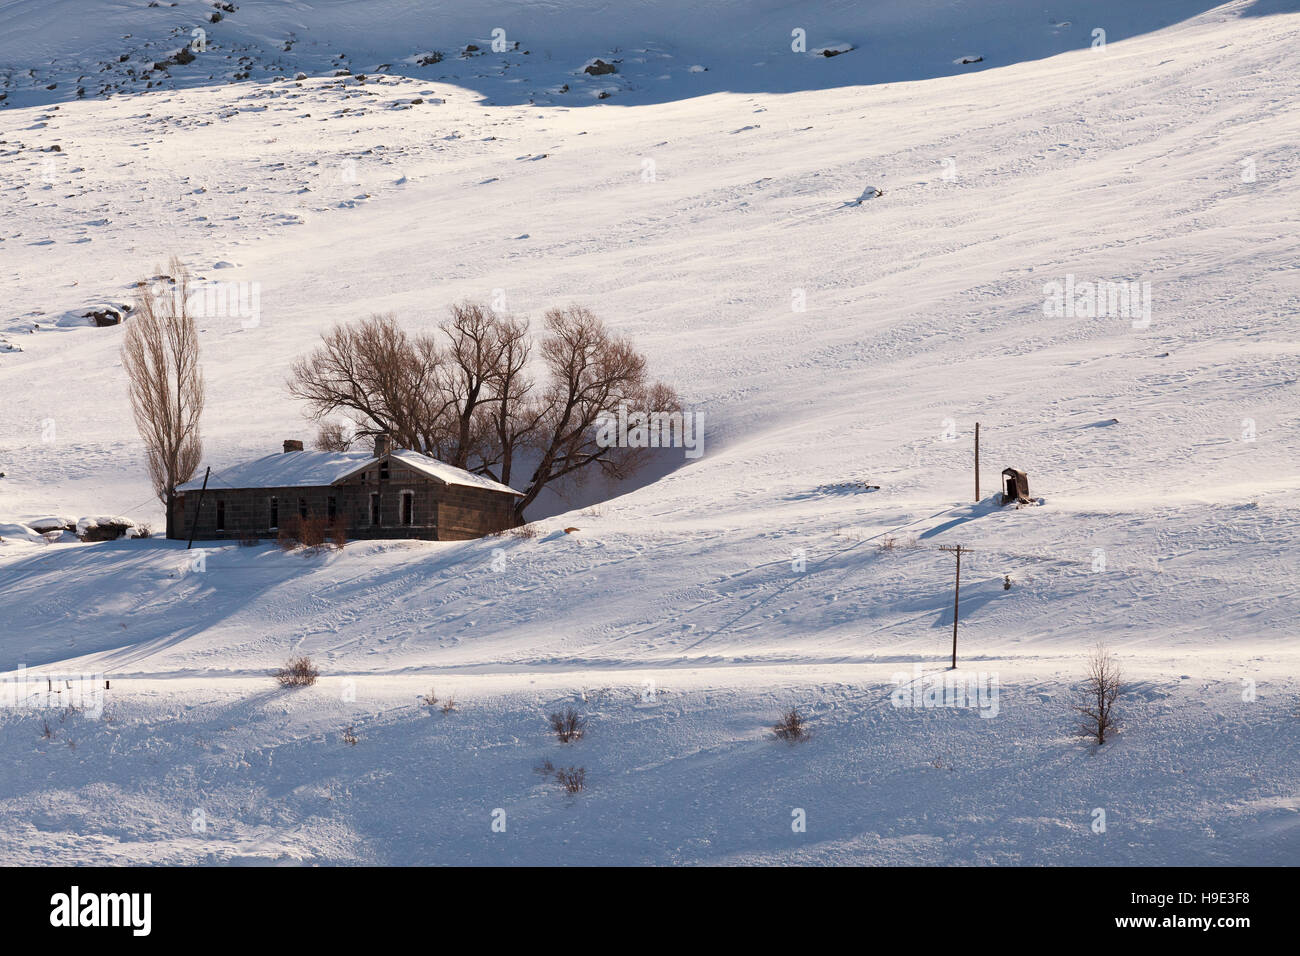 Sarikamis is one of the most beautiful ski resort in Kars province ,Turkey - Stock Image